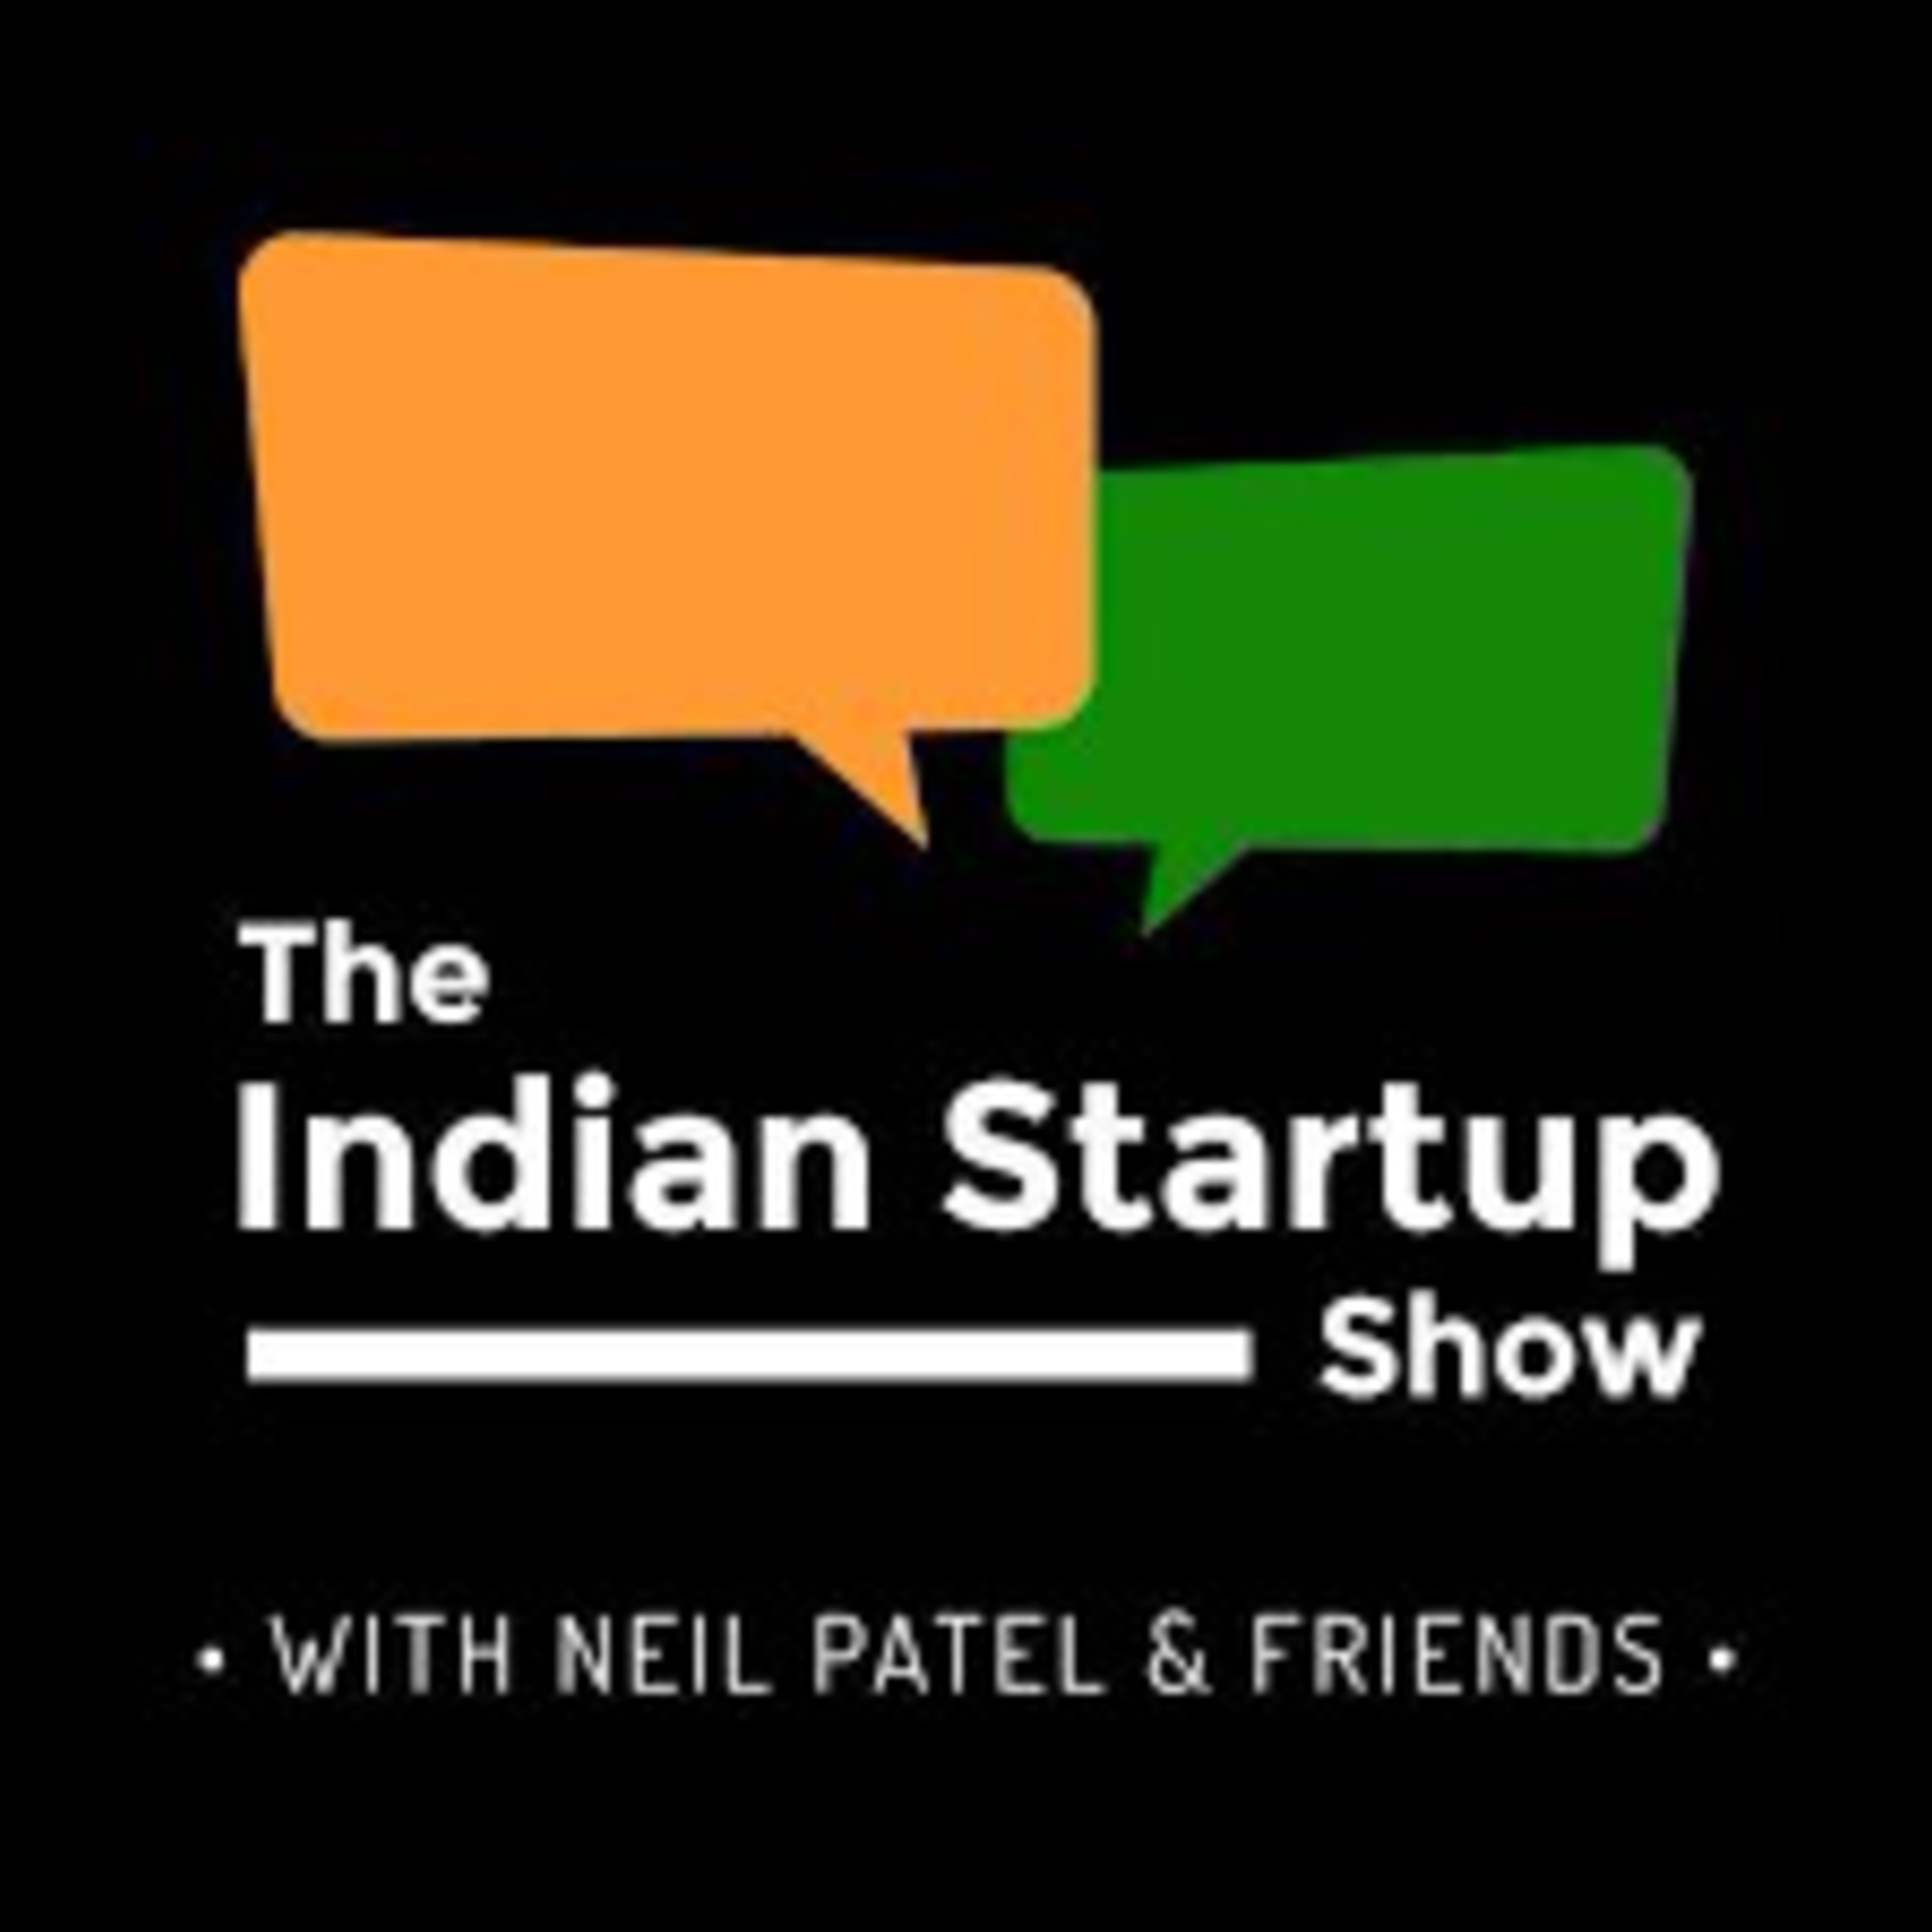 #102: Siraj Raval -Director of The School of AI, Youtube personality & bestselling author.